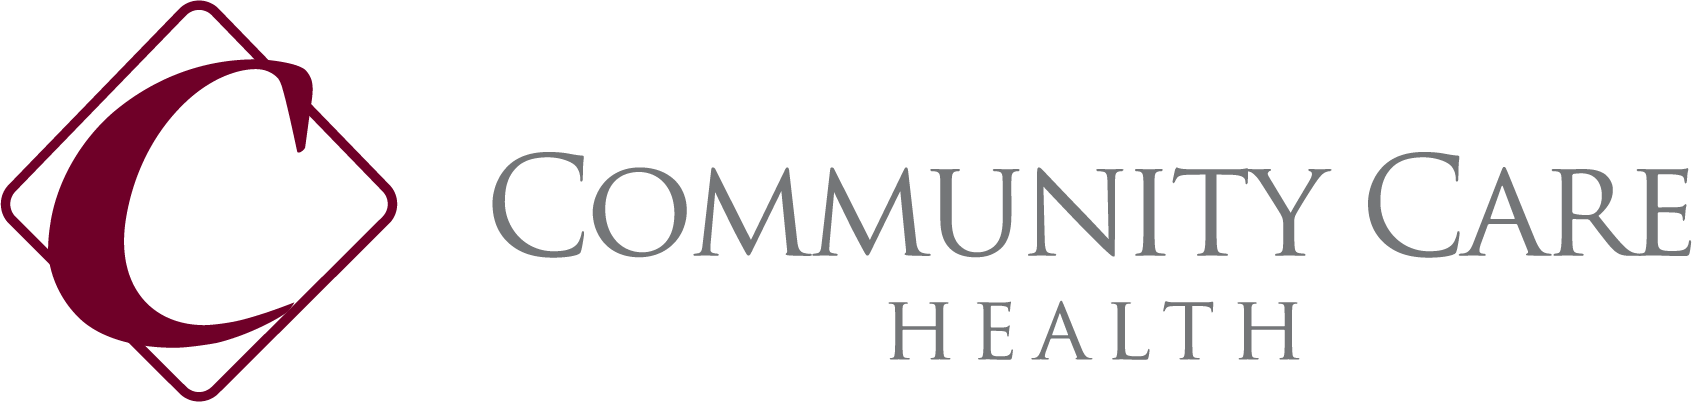 Community Care Health logo